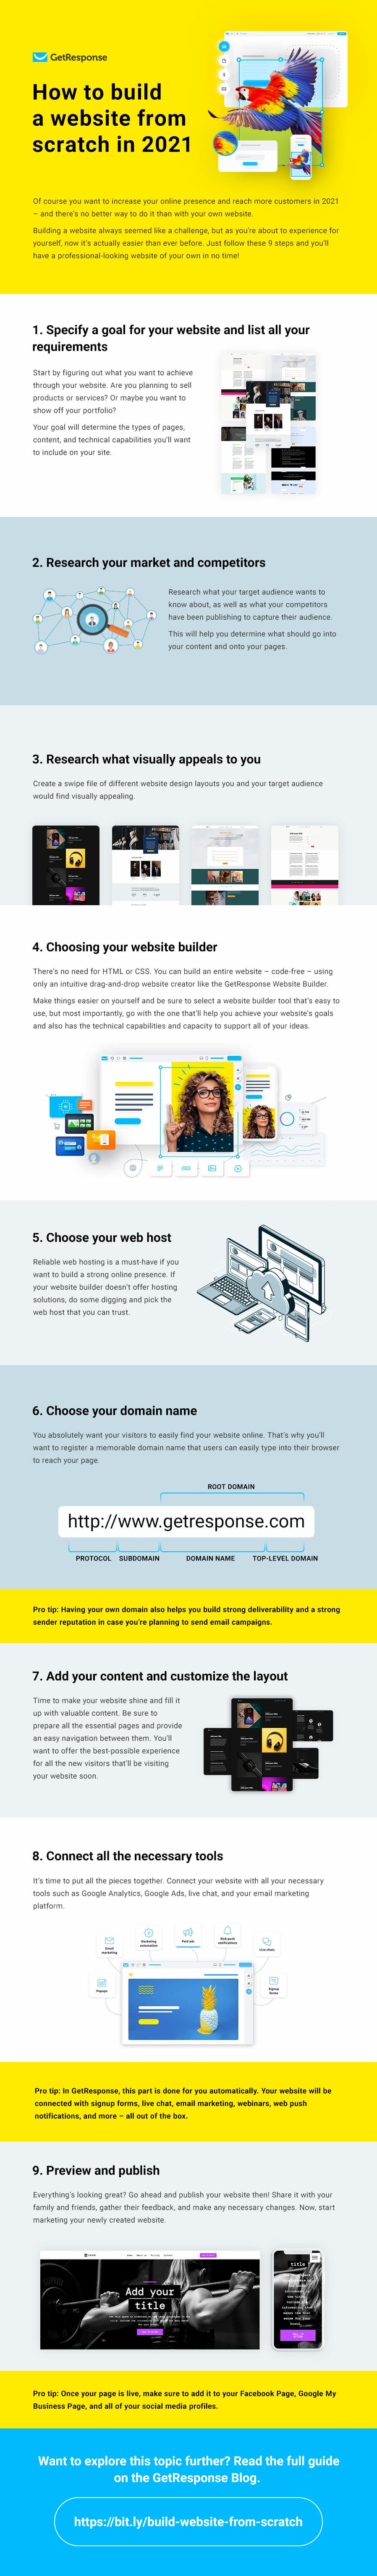 How to build a website from scratch infographic